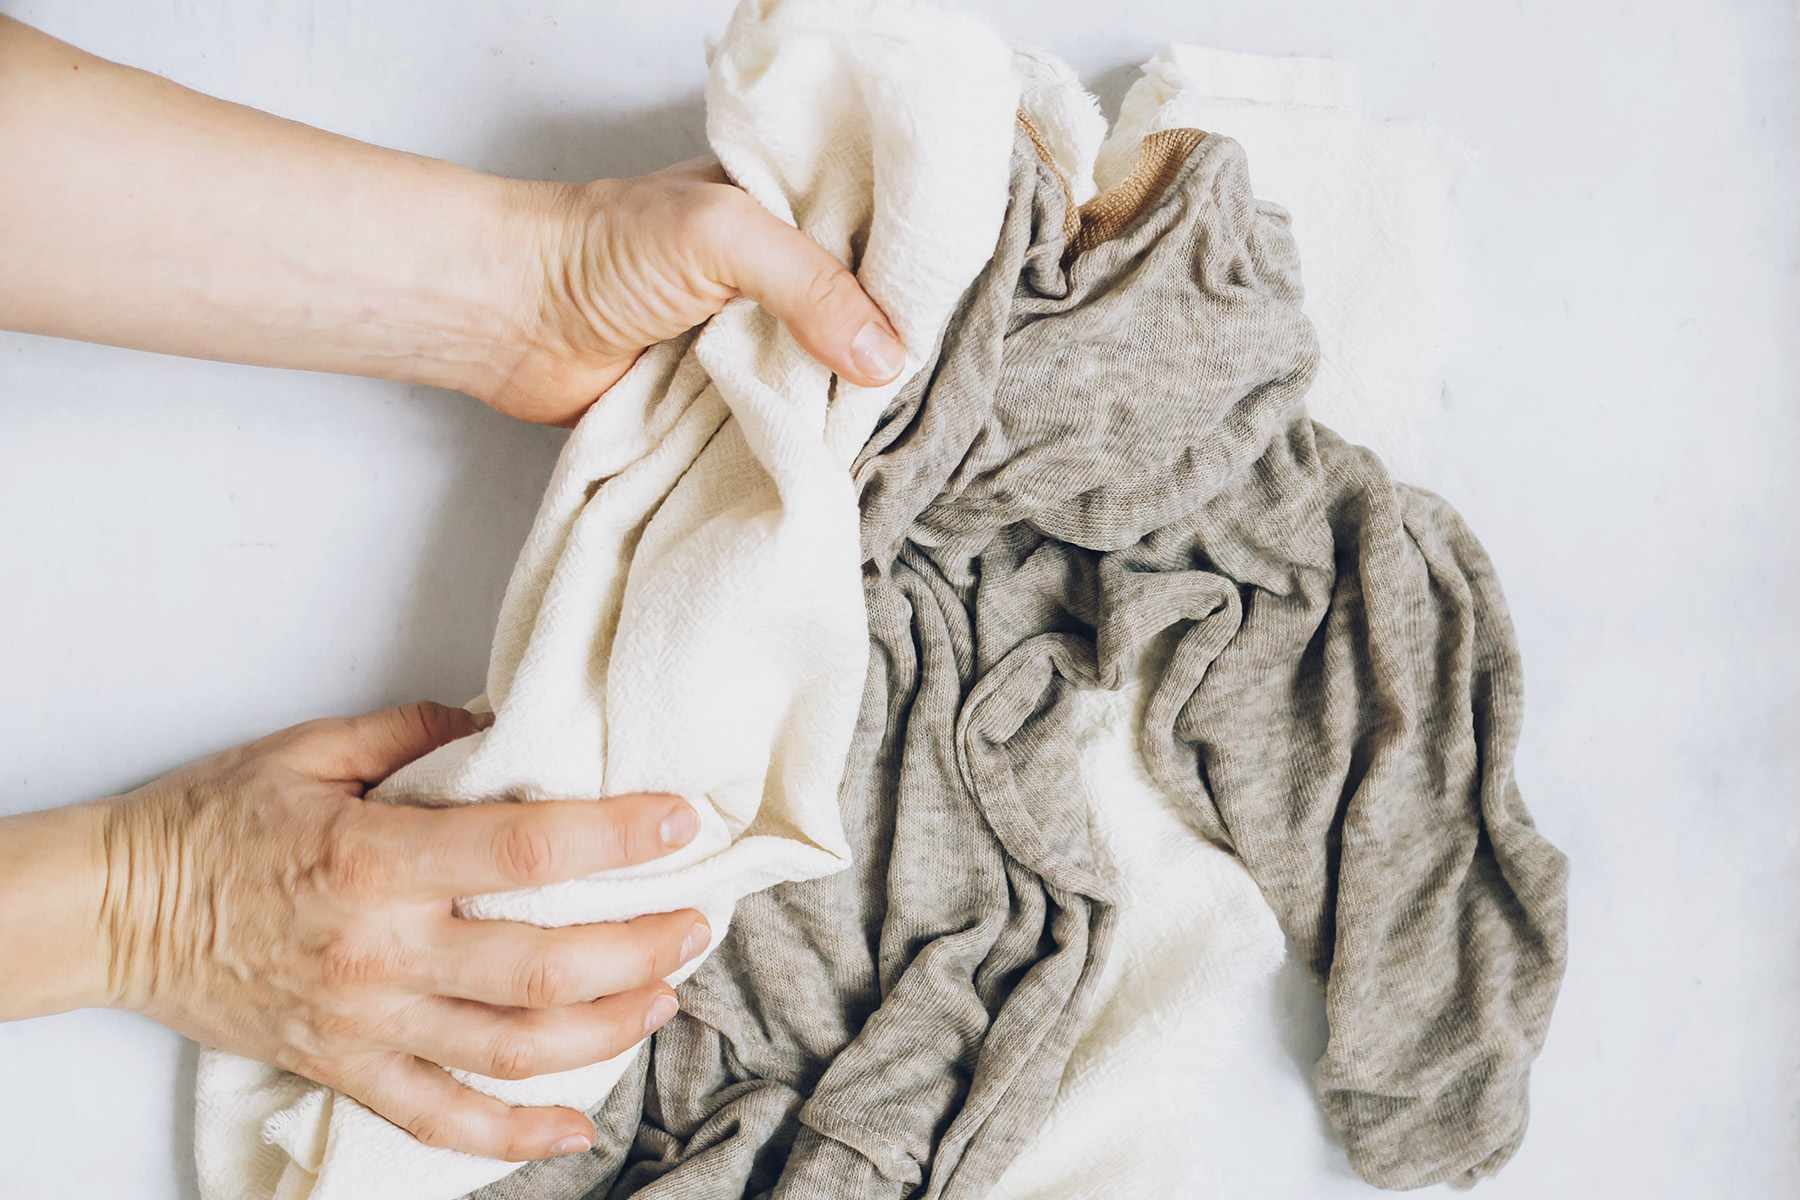 Someone drying a garment with a towel